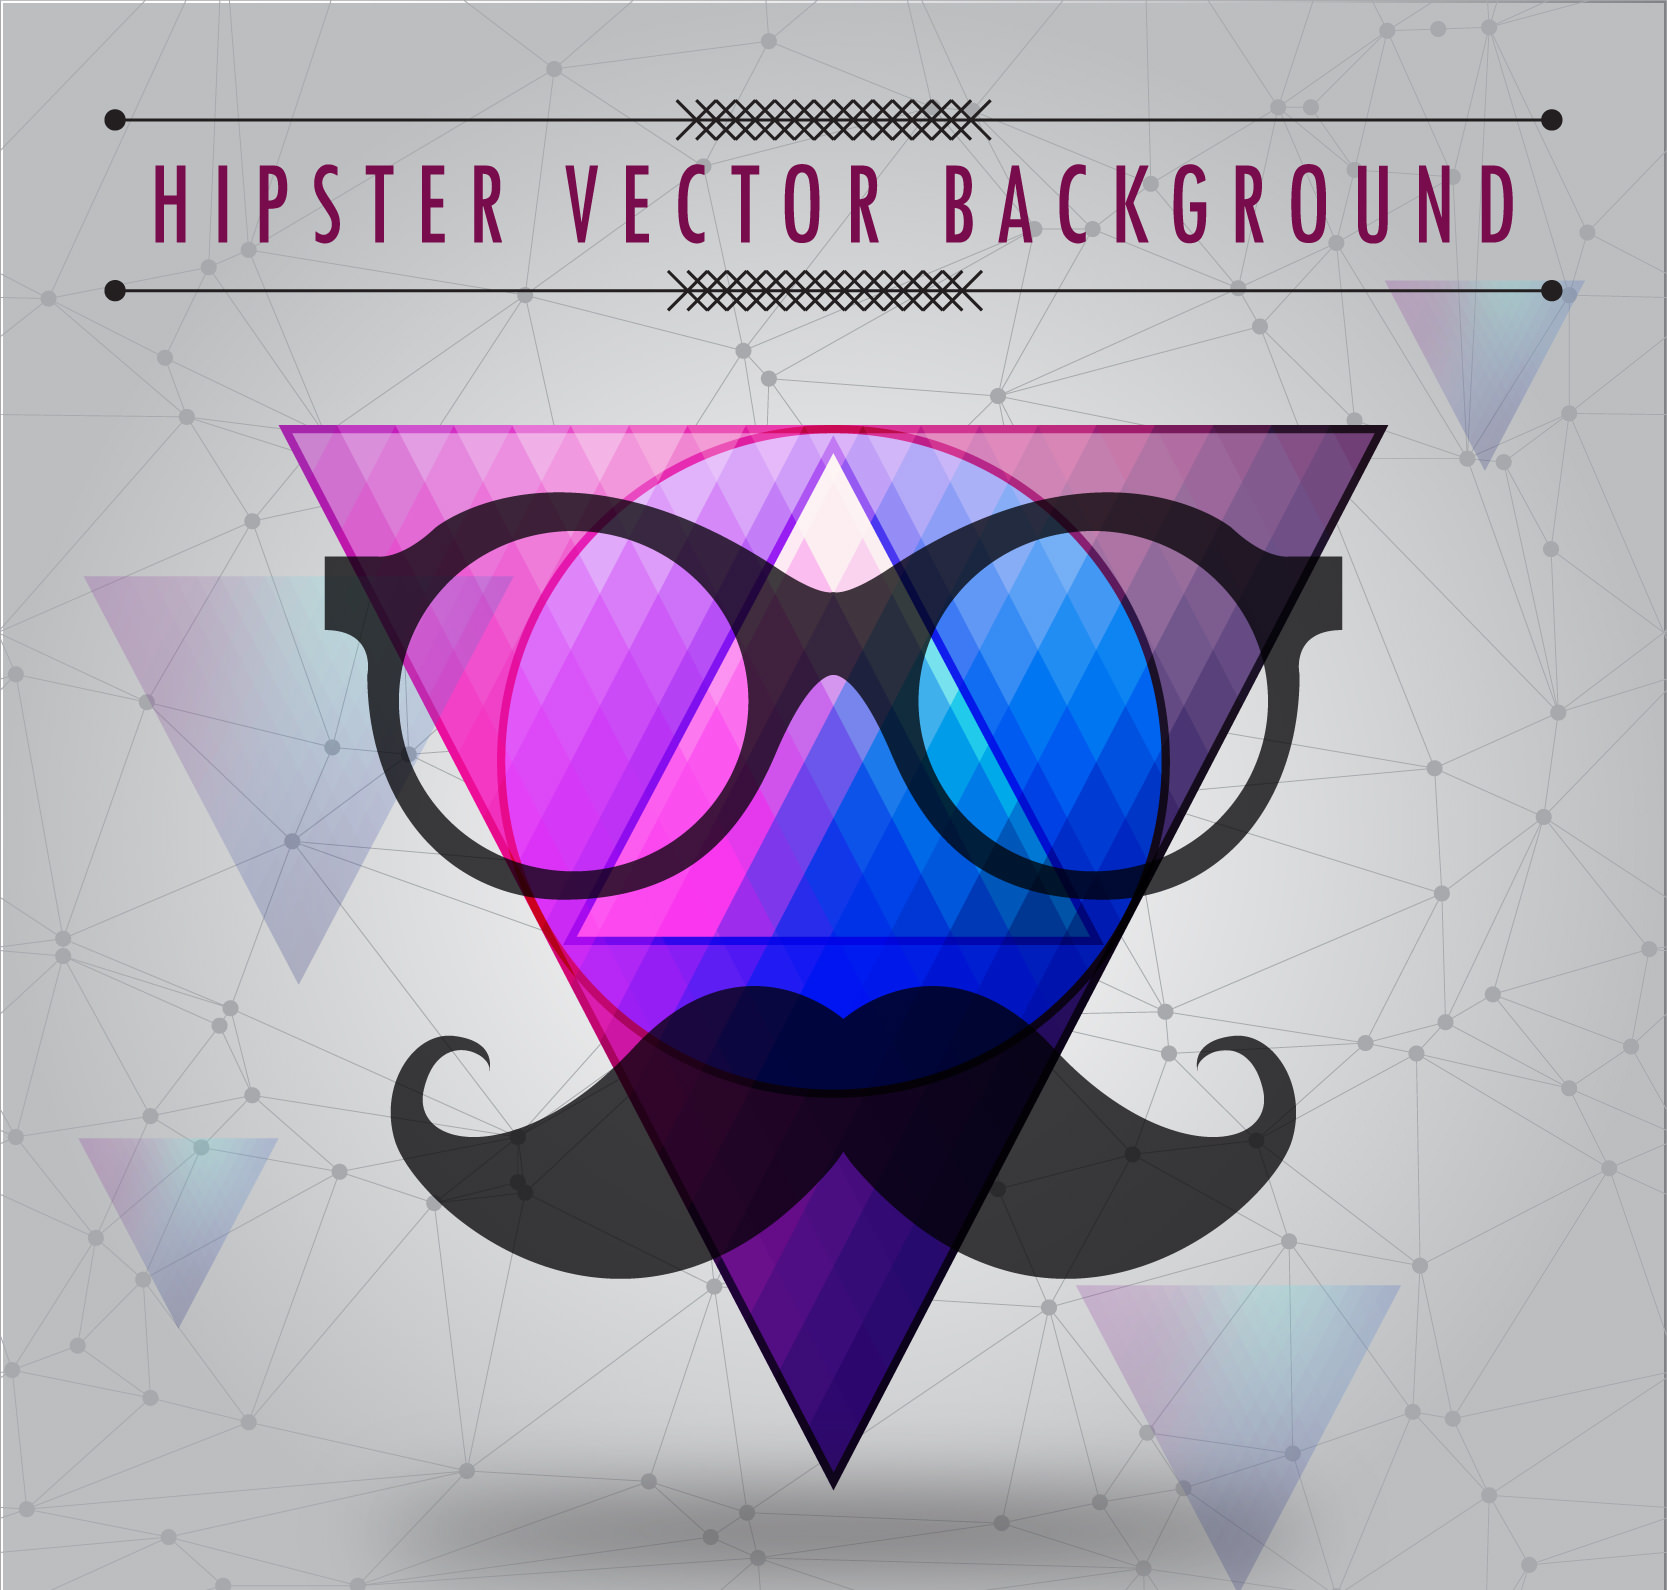 15 vintage hipster backgrounds hq backgrounds